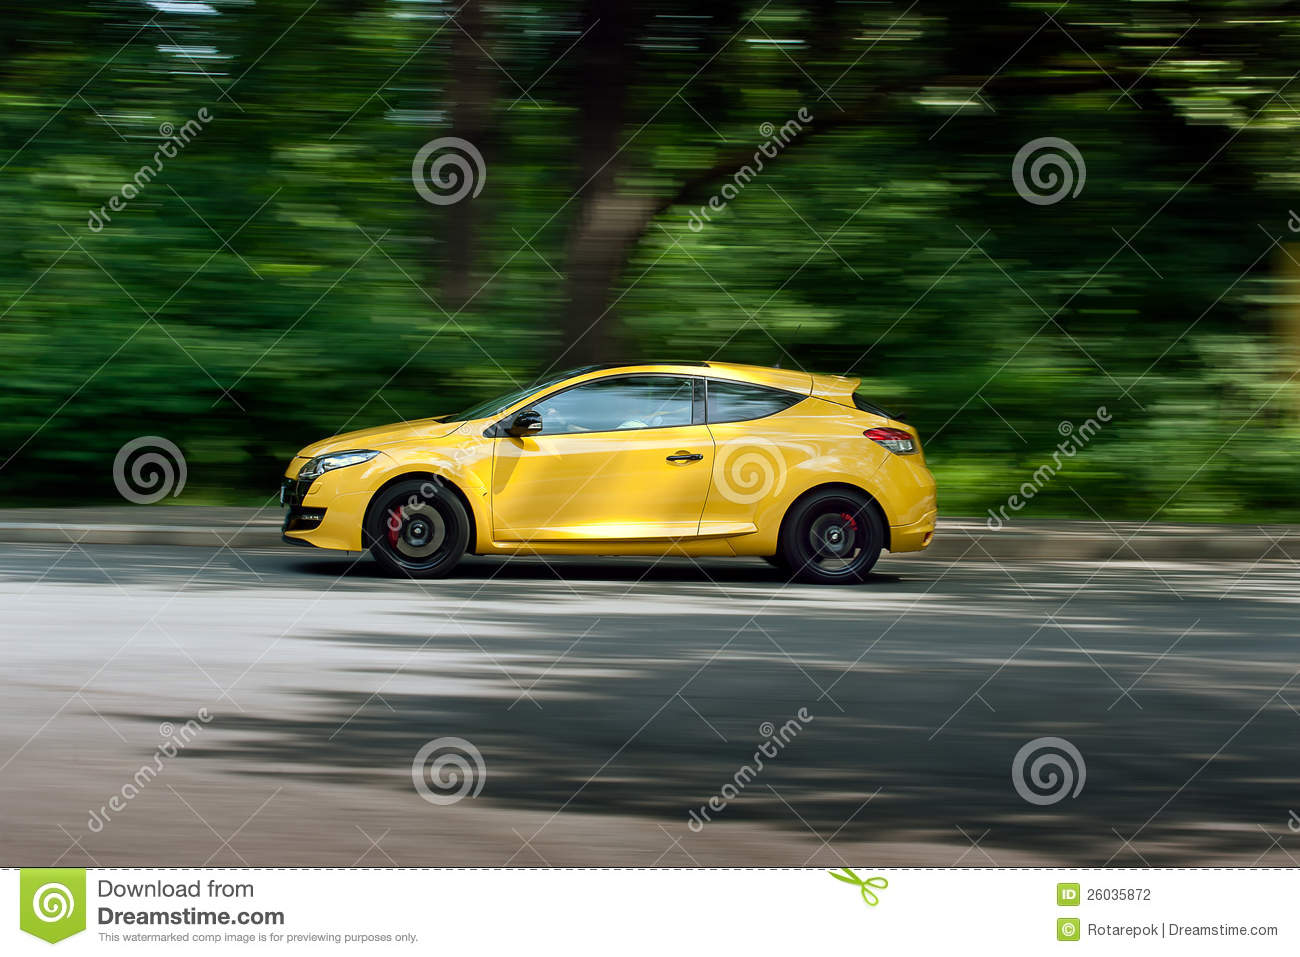 car moving on the road stock photography image 26035872. Black Bedroom Furniture Sets. Home Design Ideas